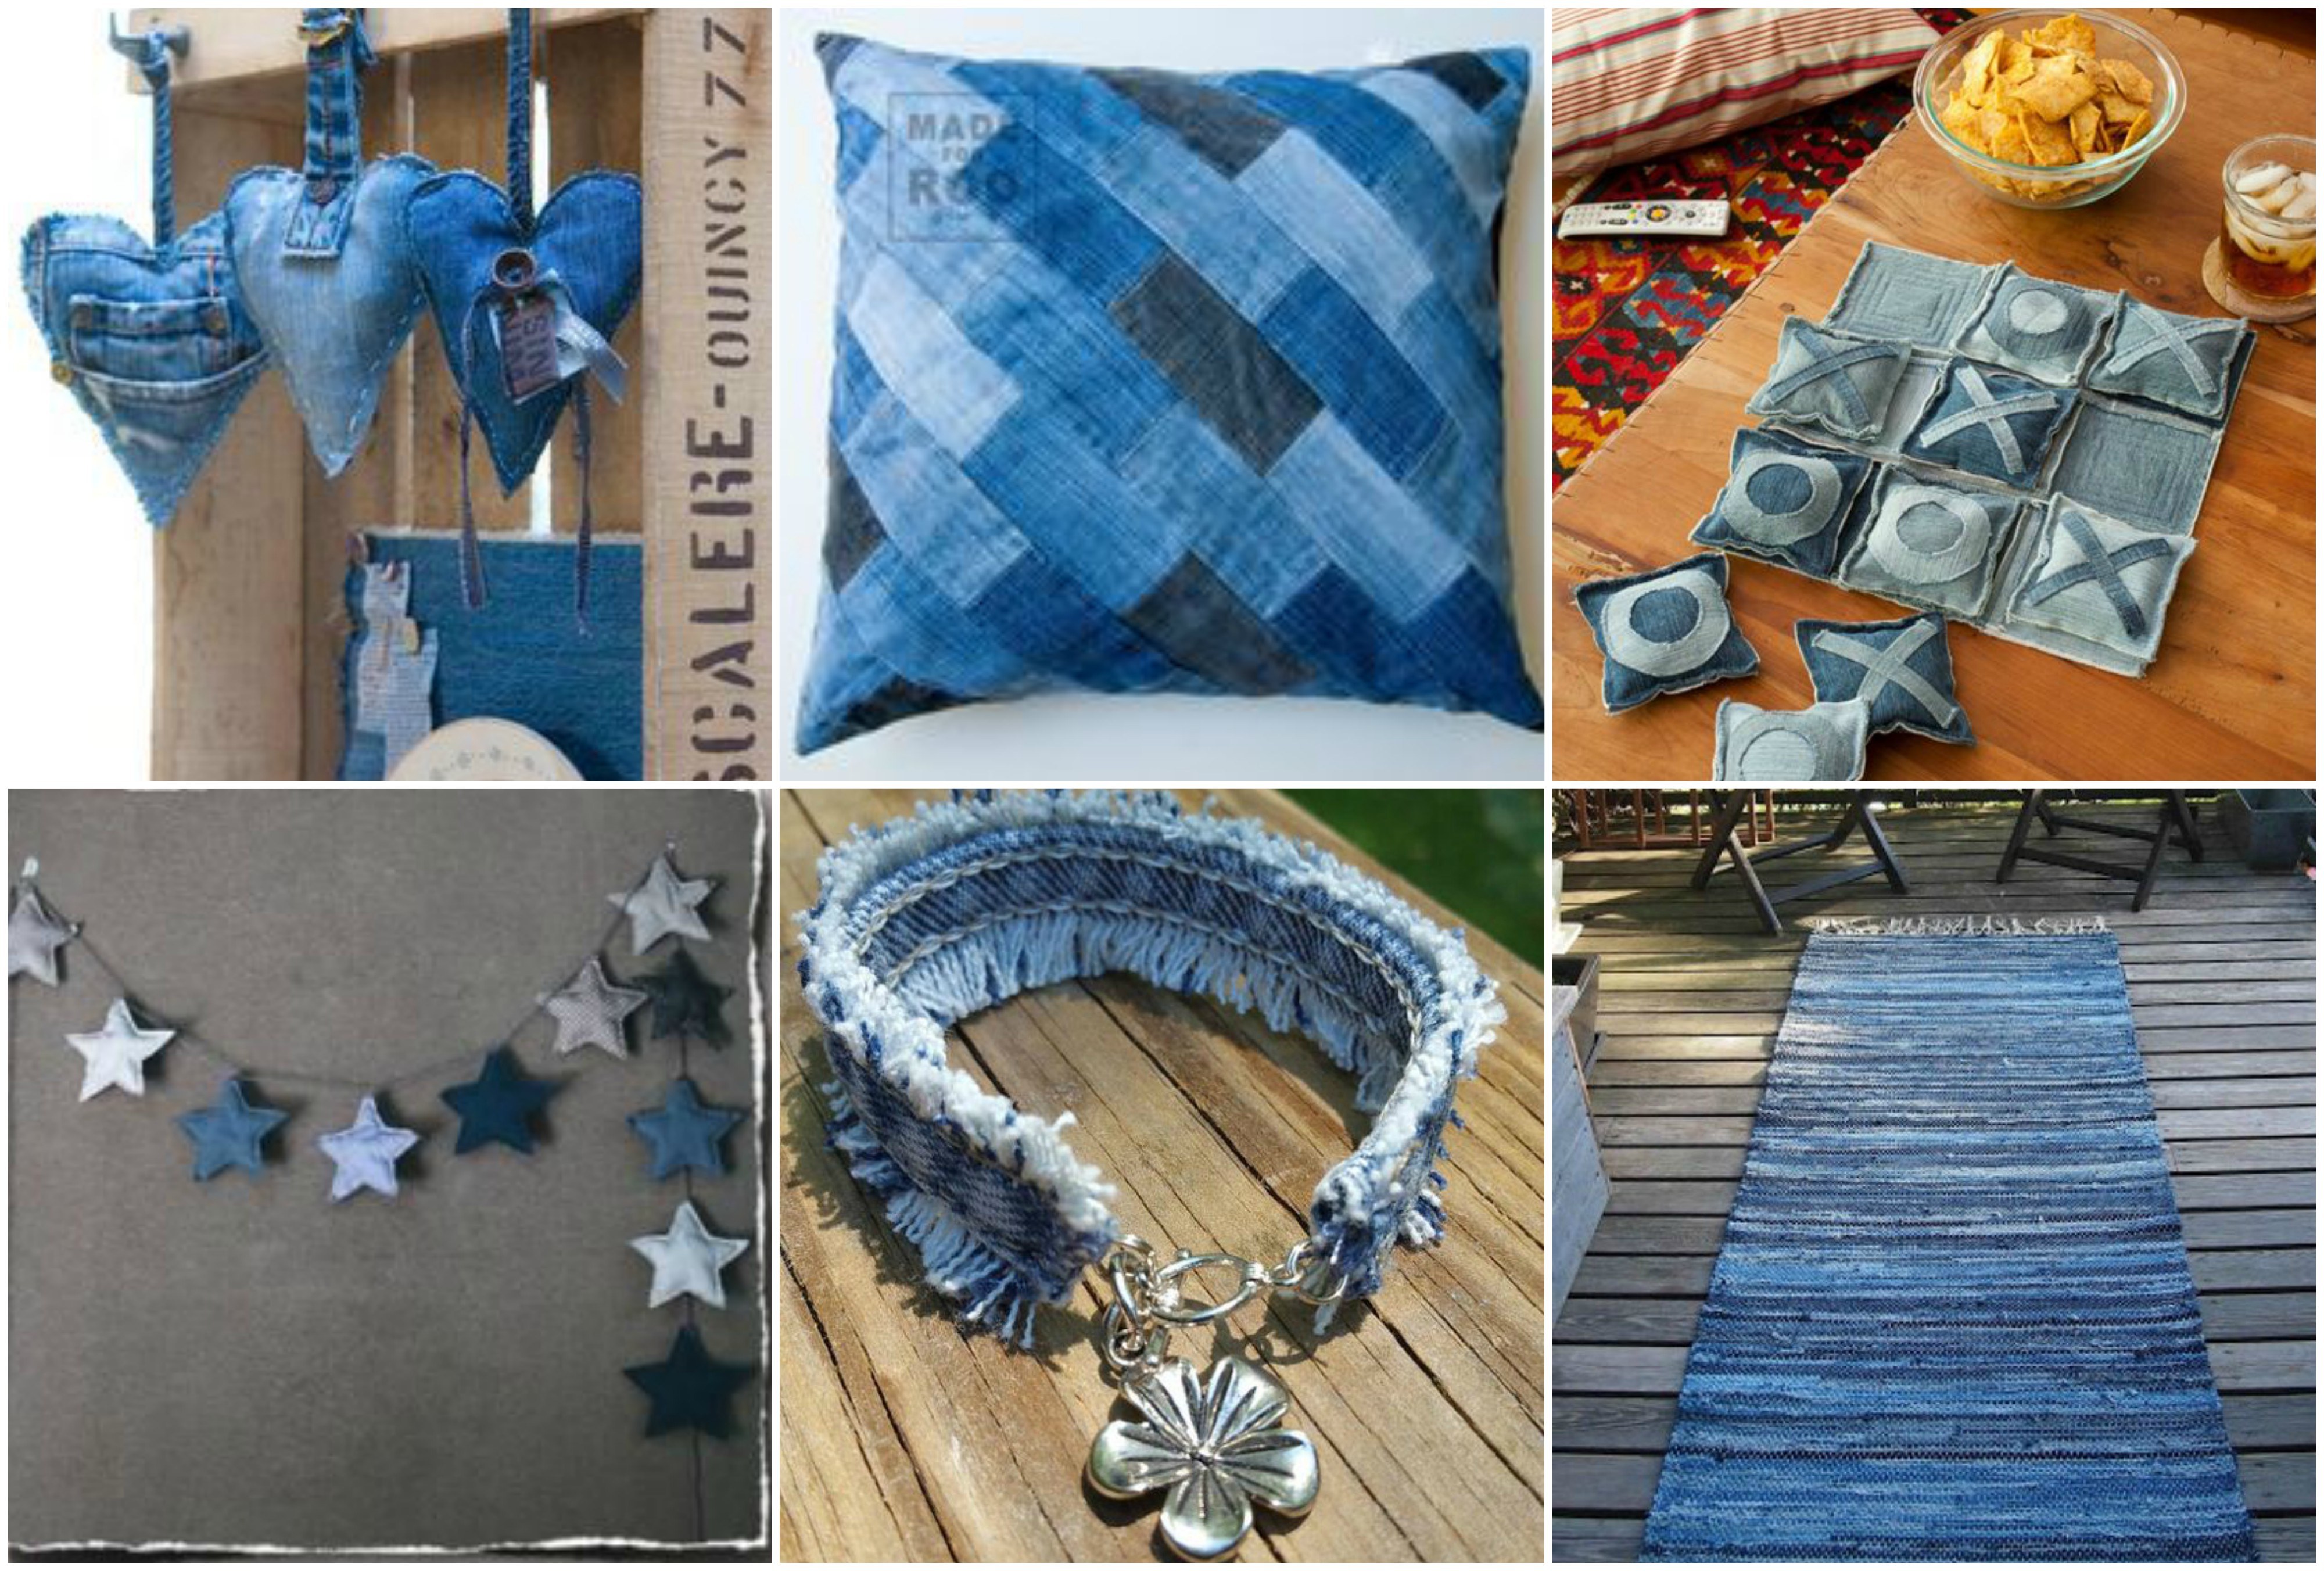 15 tolle upcycling ideen aus alten jeans. Black Bedroom Furniture Sets. Home Design Ideas